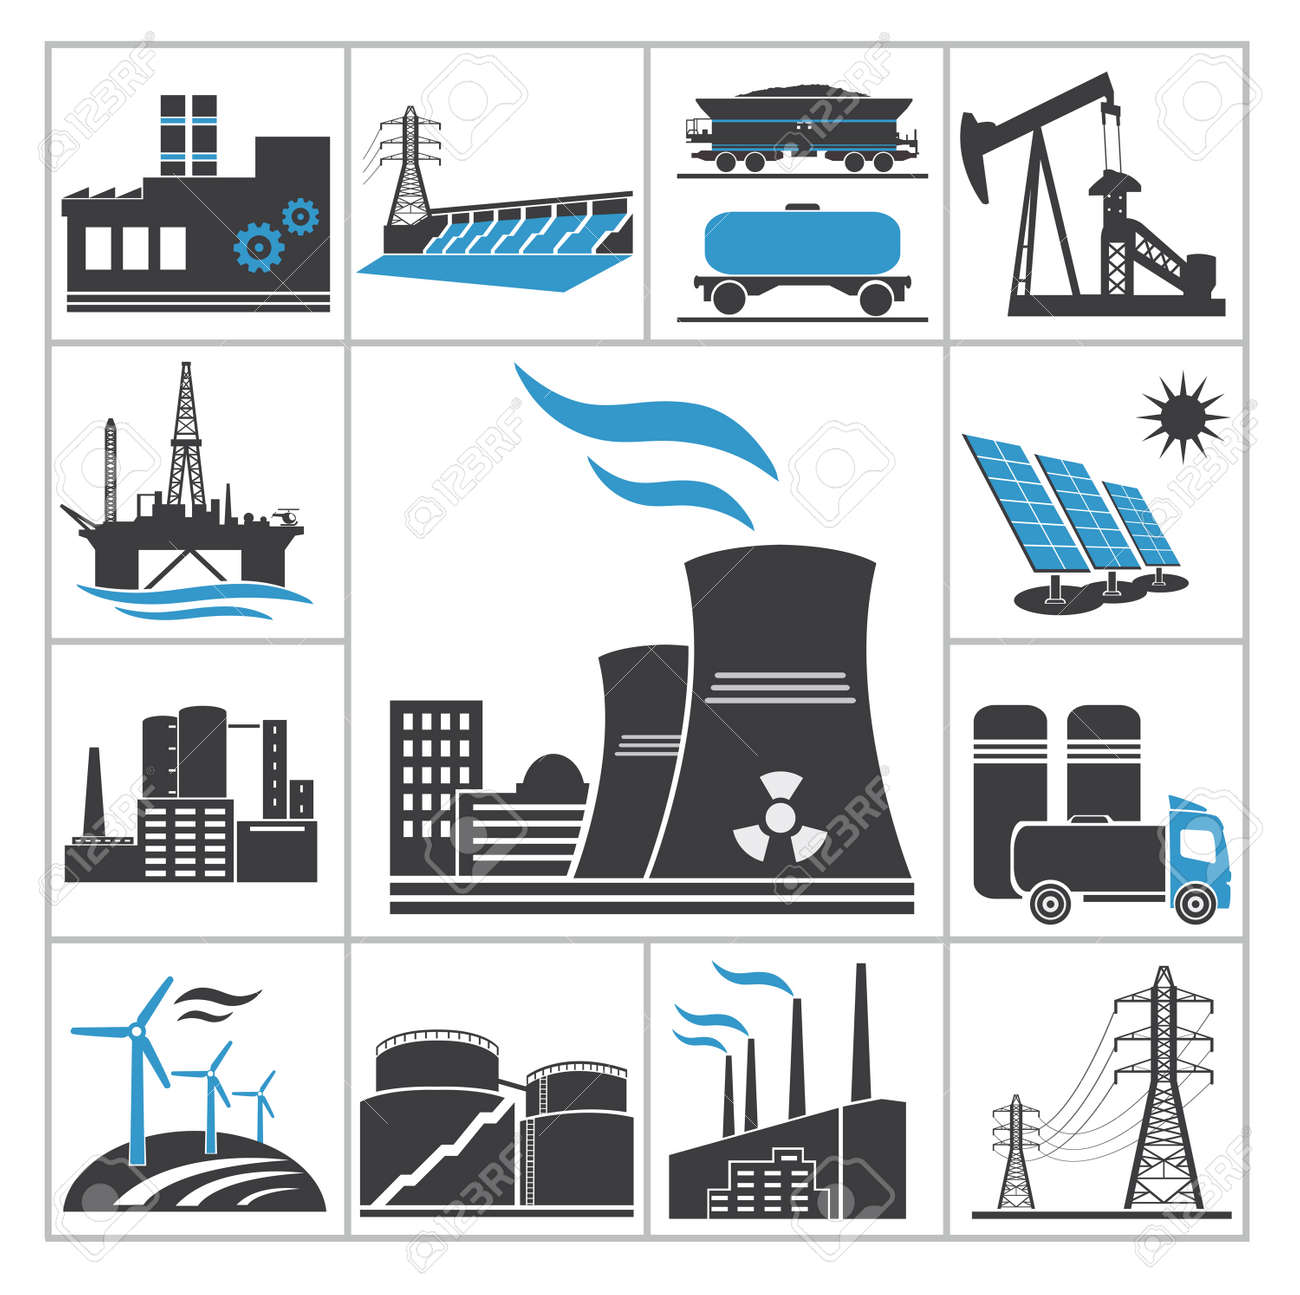 Power icons Vector set for you design - 24188160